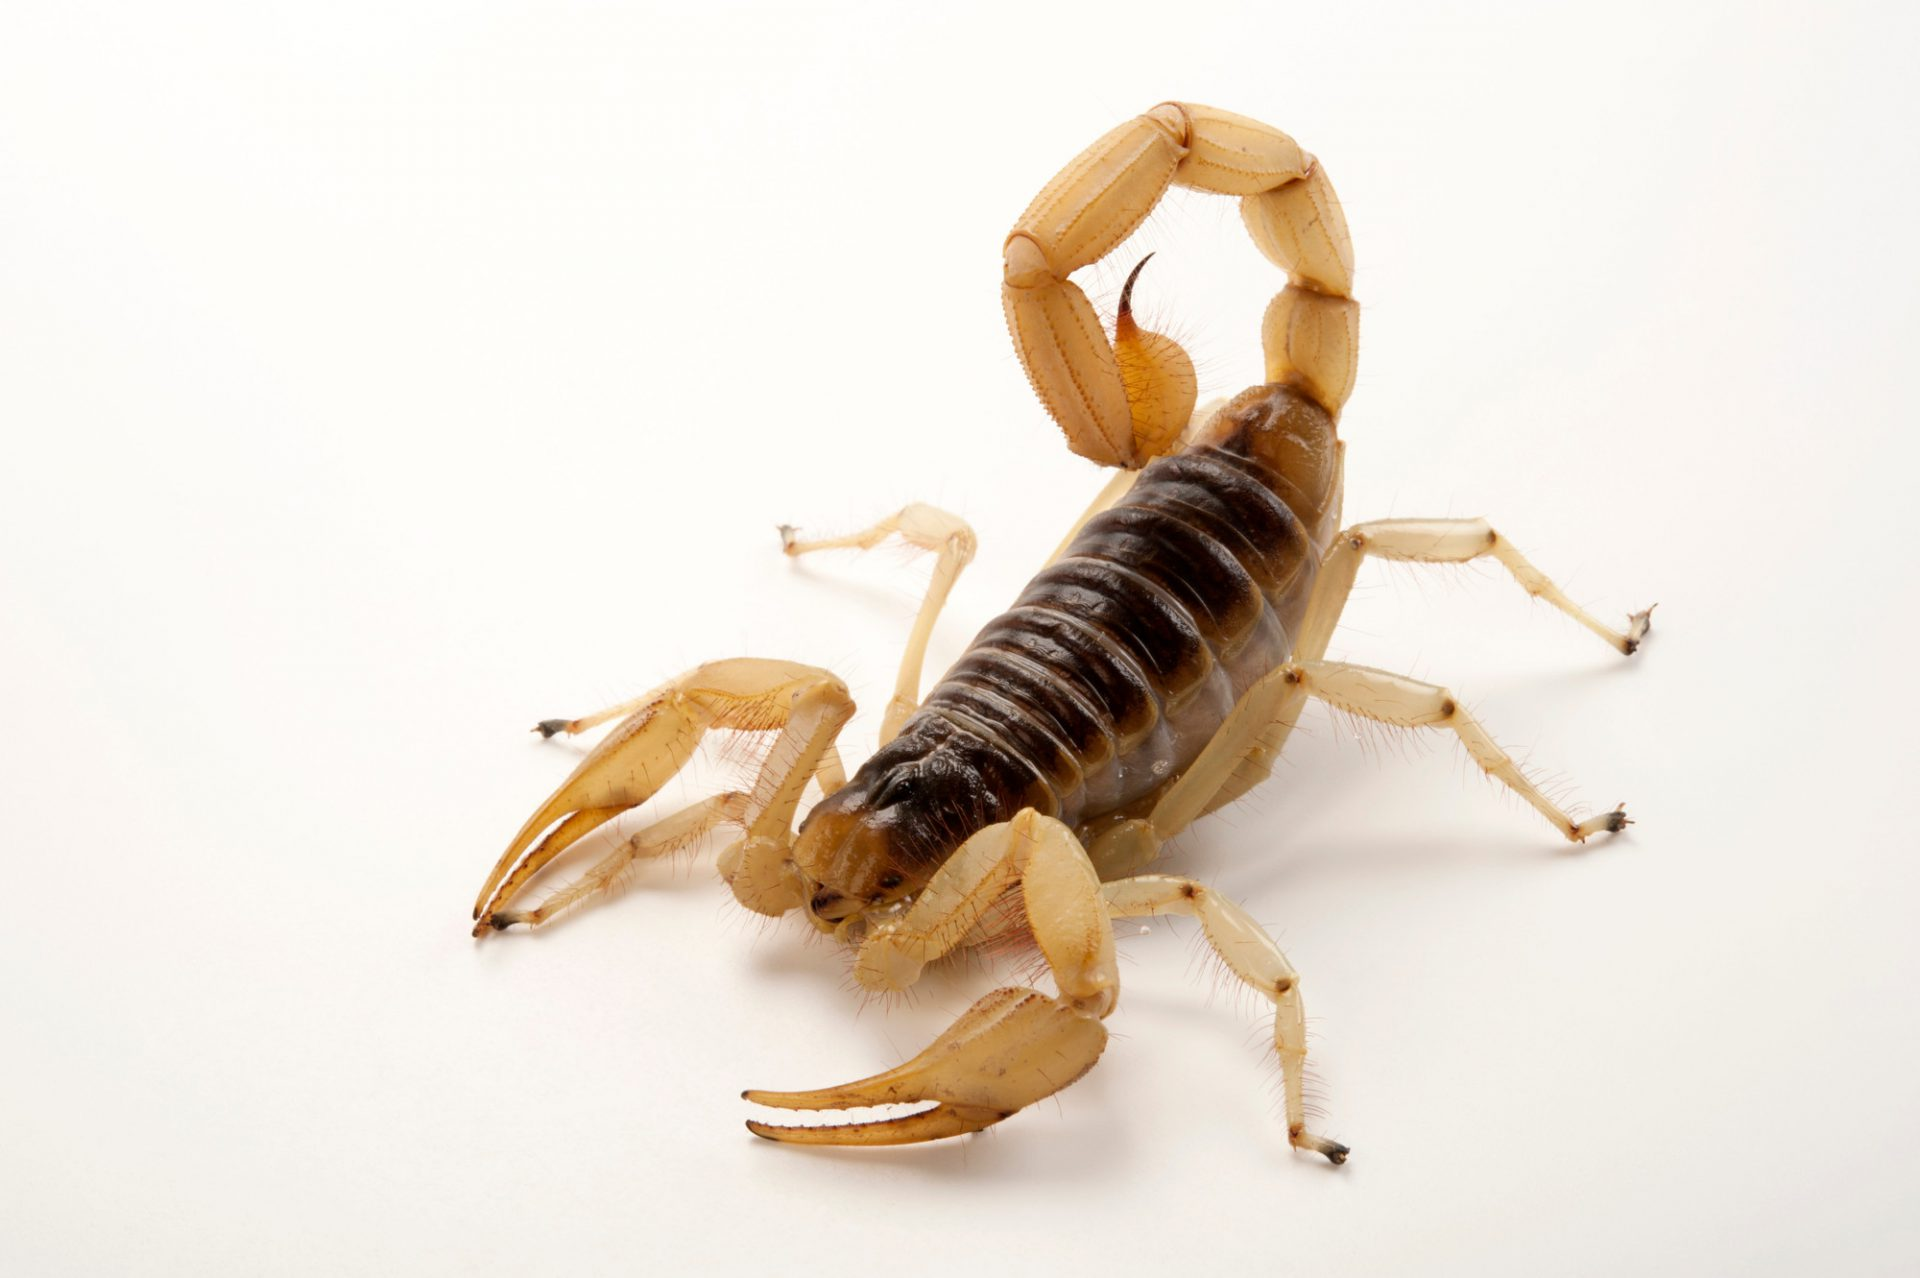 A giant desert hairy scorpion (Hadrurus arizonensis) at the Gladys Porter Zoo in Brownsville, Texas.